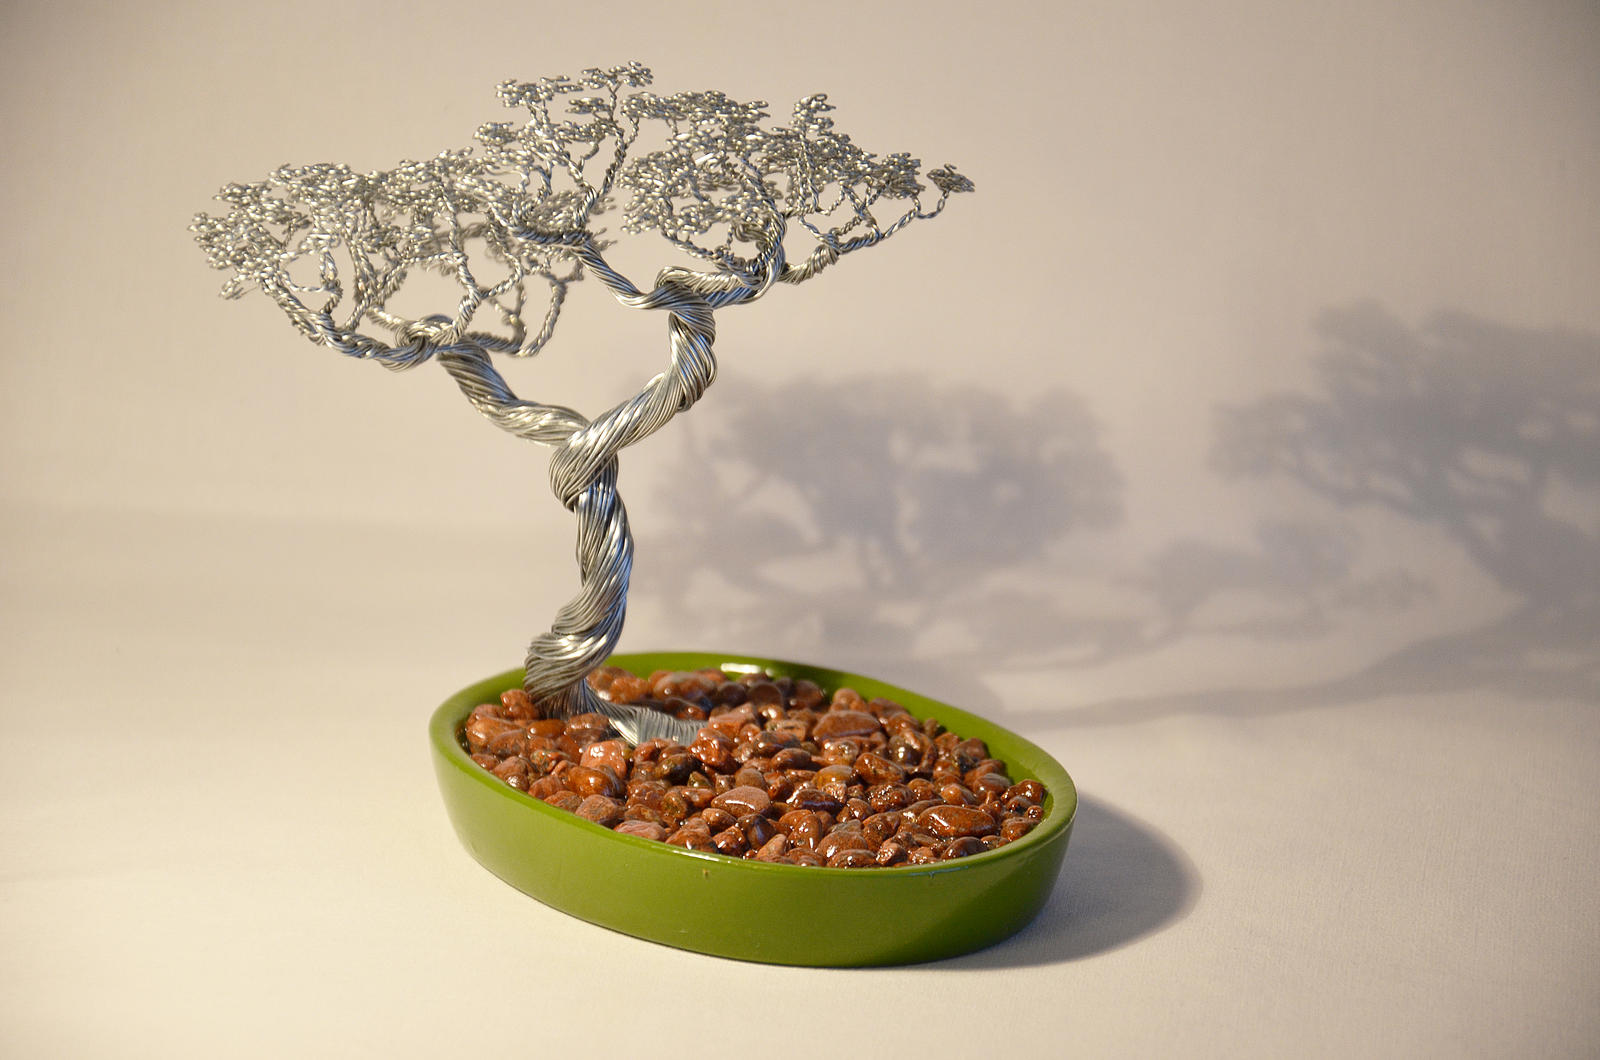 bonsai wire tree sculpture by minskis on deviantart rh minskis deviantart com Bonsai Shapes Bonsai Copper Wire